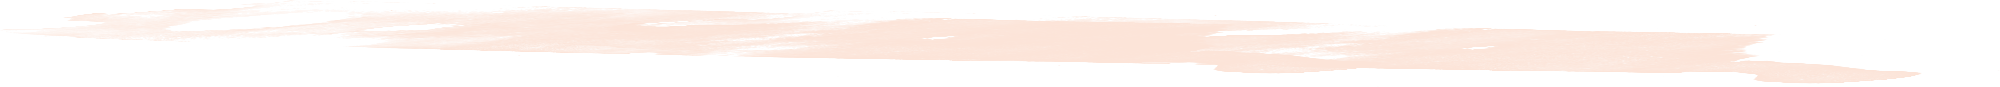 watercolor-peach-divider.png